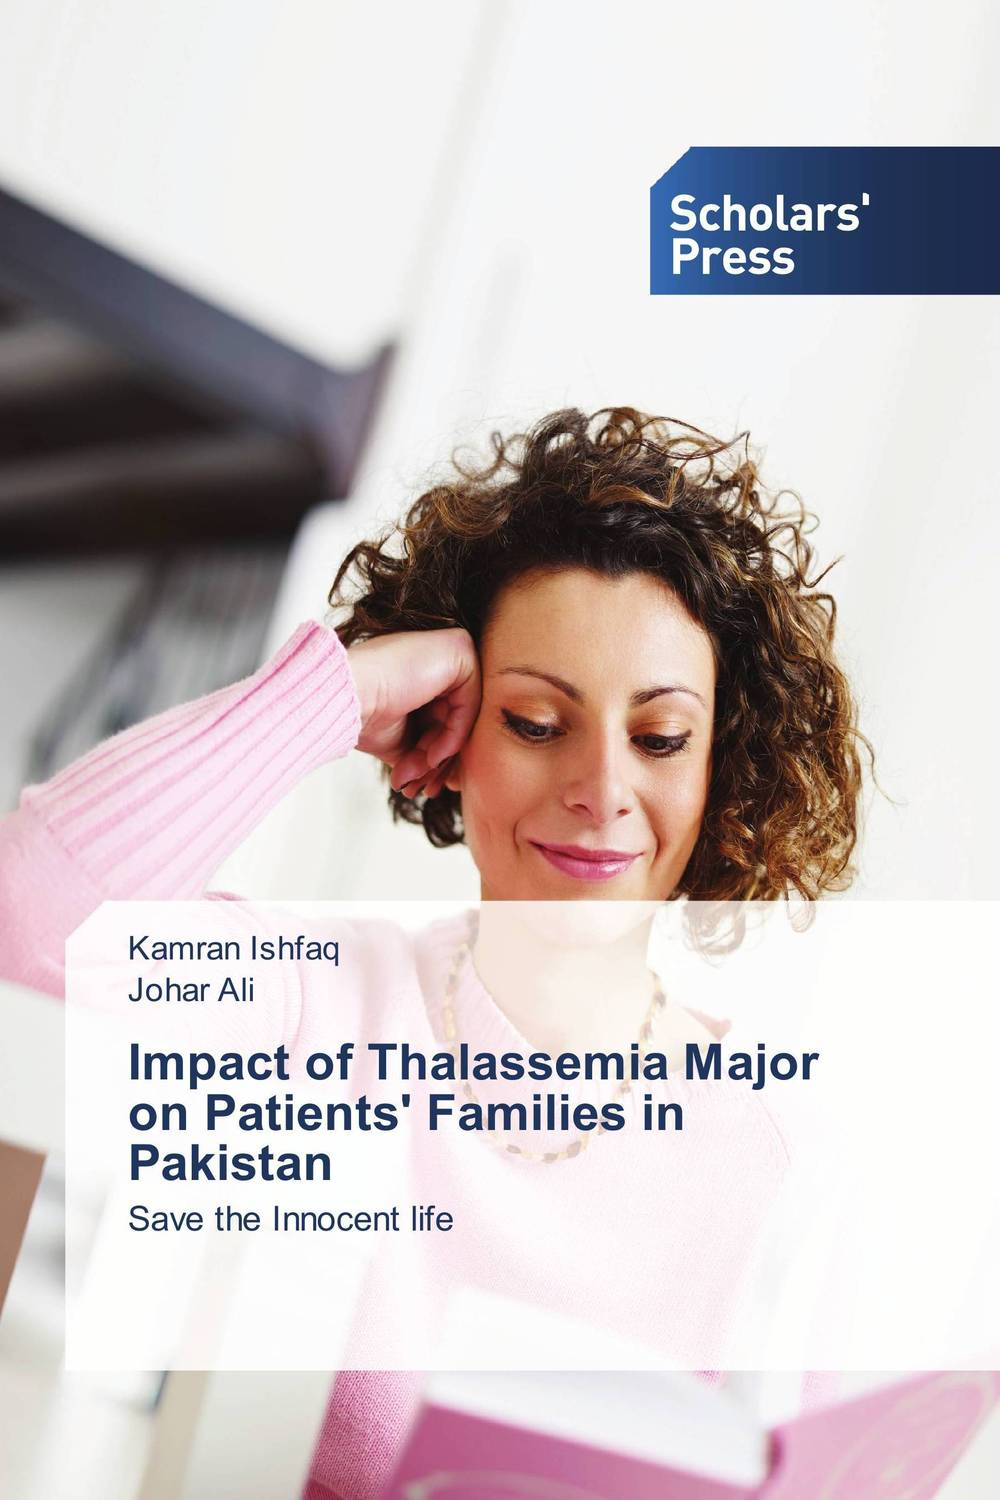 Impact of Thalassemia Major on Patients' Families in Pakistan retinopathy among undiagnosed patients of pakistan